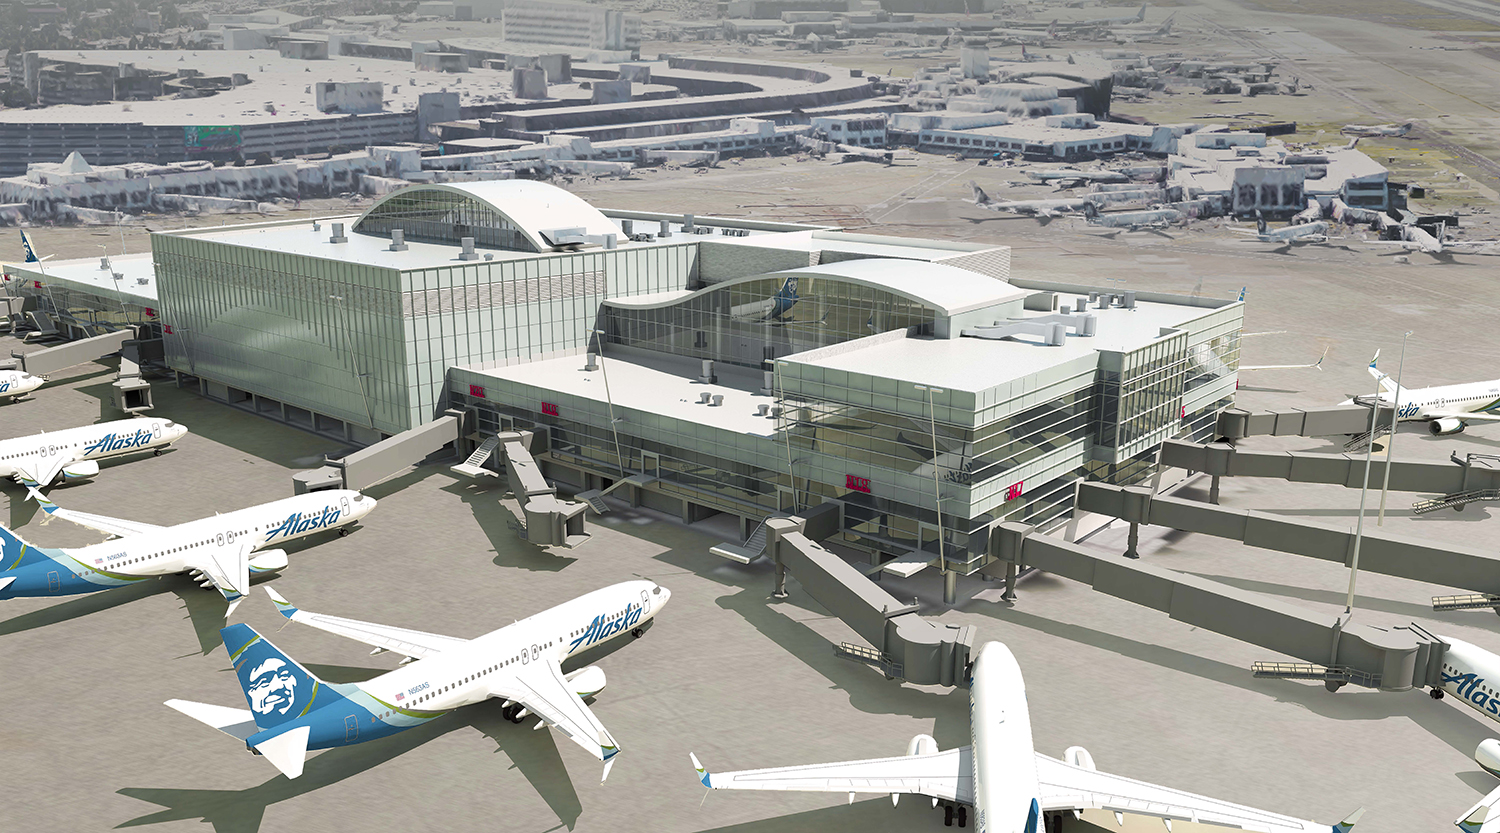 Sea Tac Airport S New International Arrivals Facility And